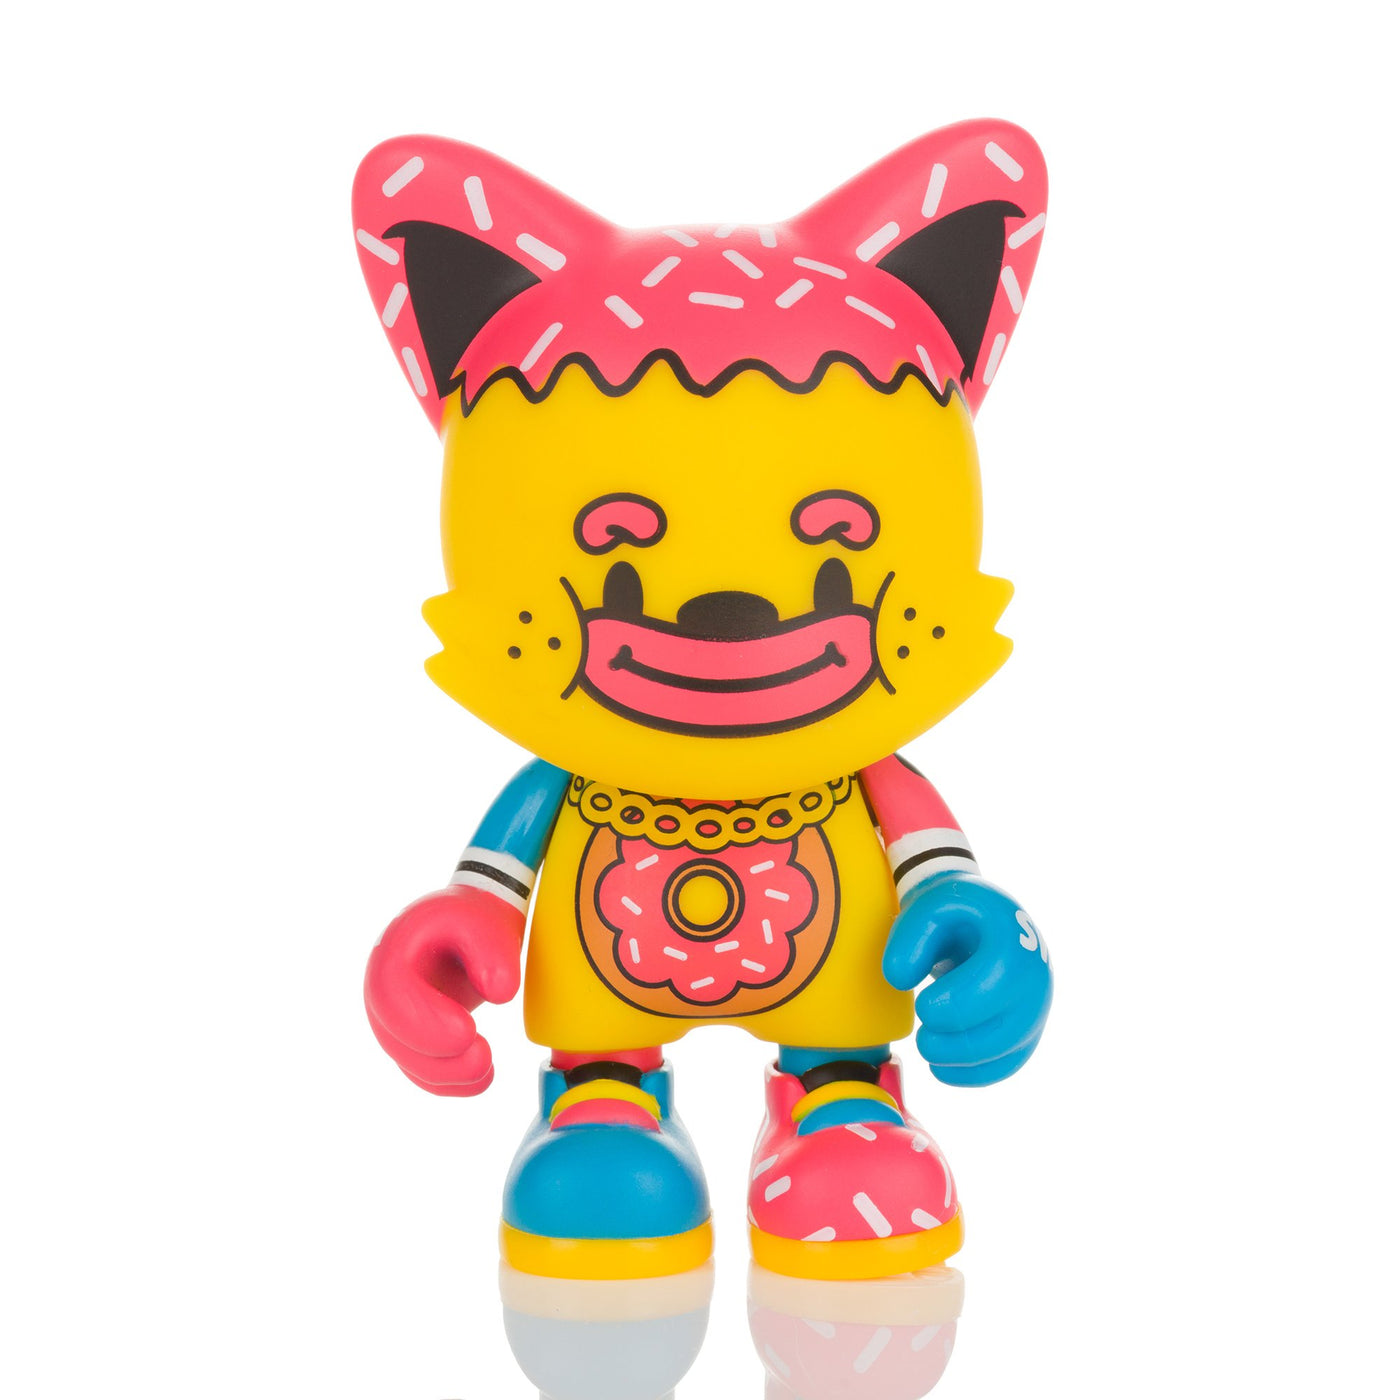 Superplastic Series 2 Chocotoy Little Donut Janky